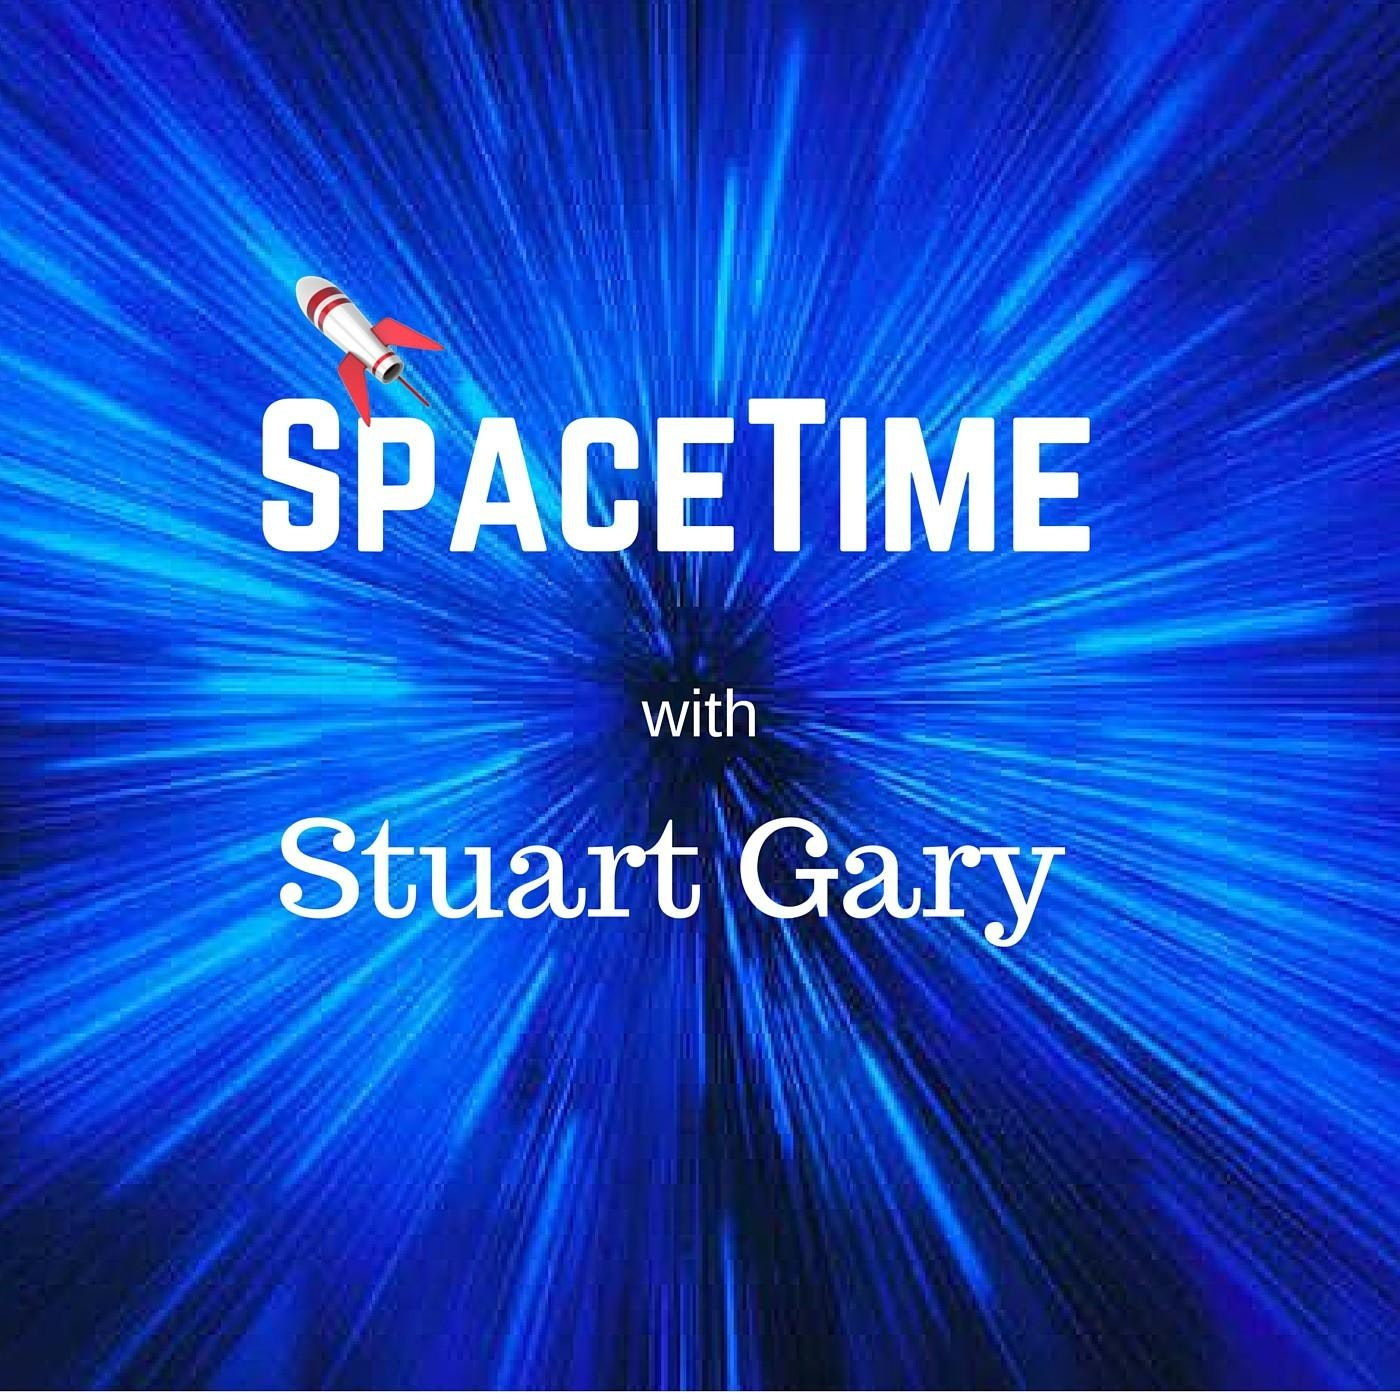 More confirmation of methane spikes on Mars by SpaceTime with Stuart Gary